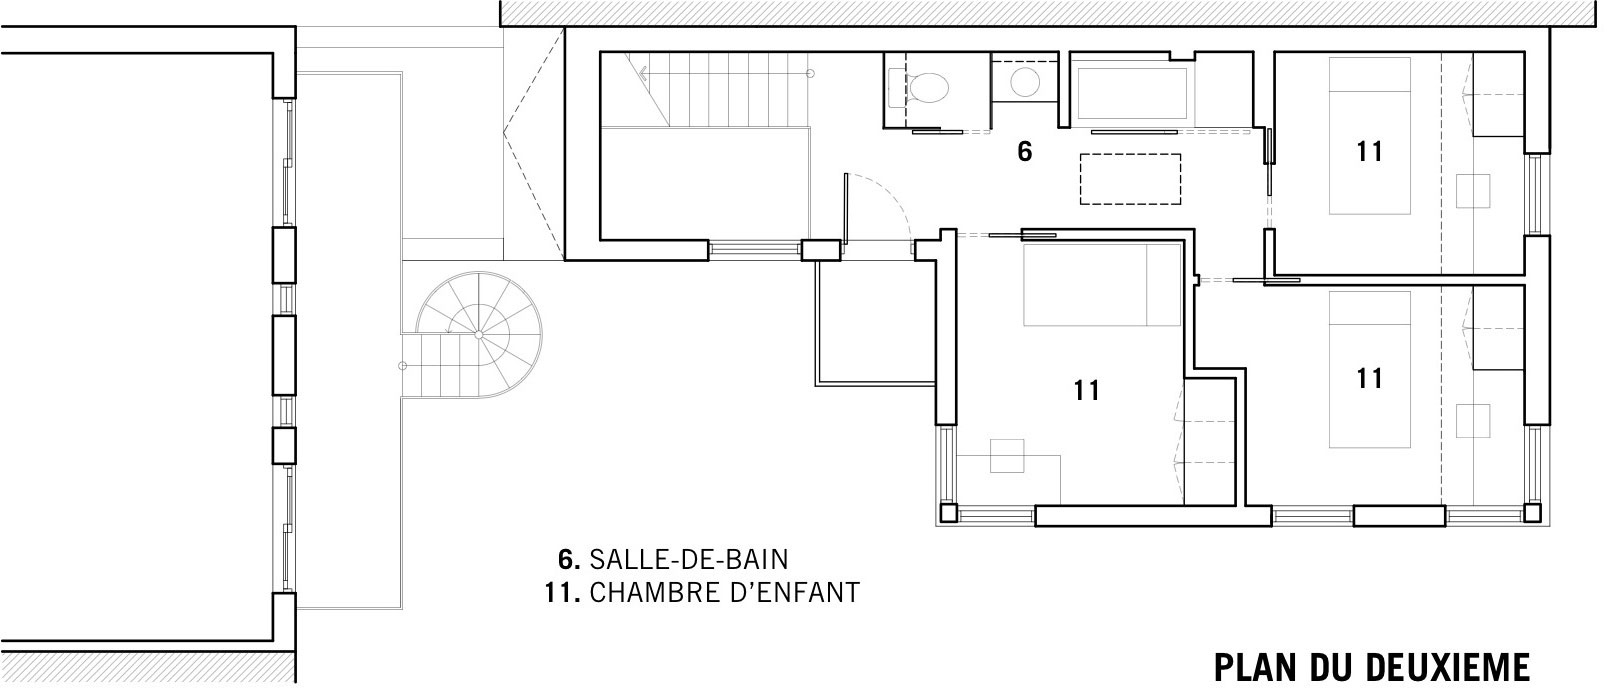 First Floor Plan, Contemporary Extension in Rosemont-Petite-Patrie, Canada